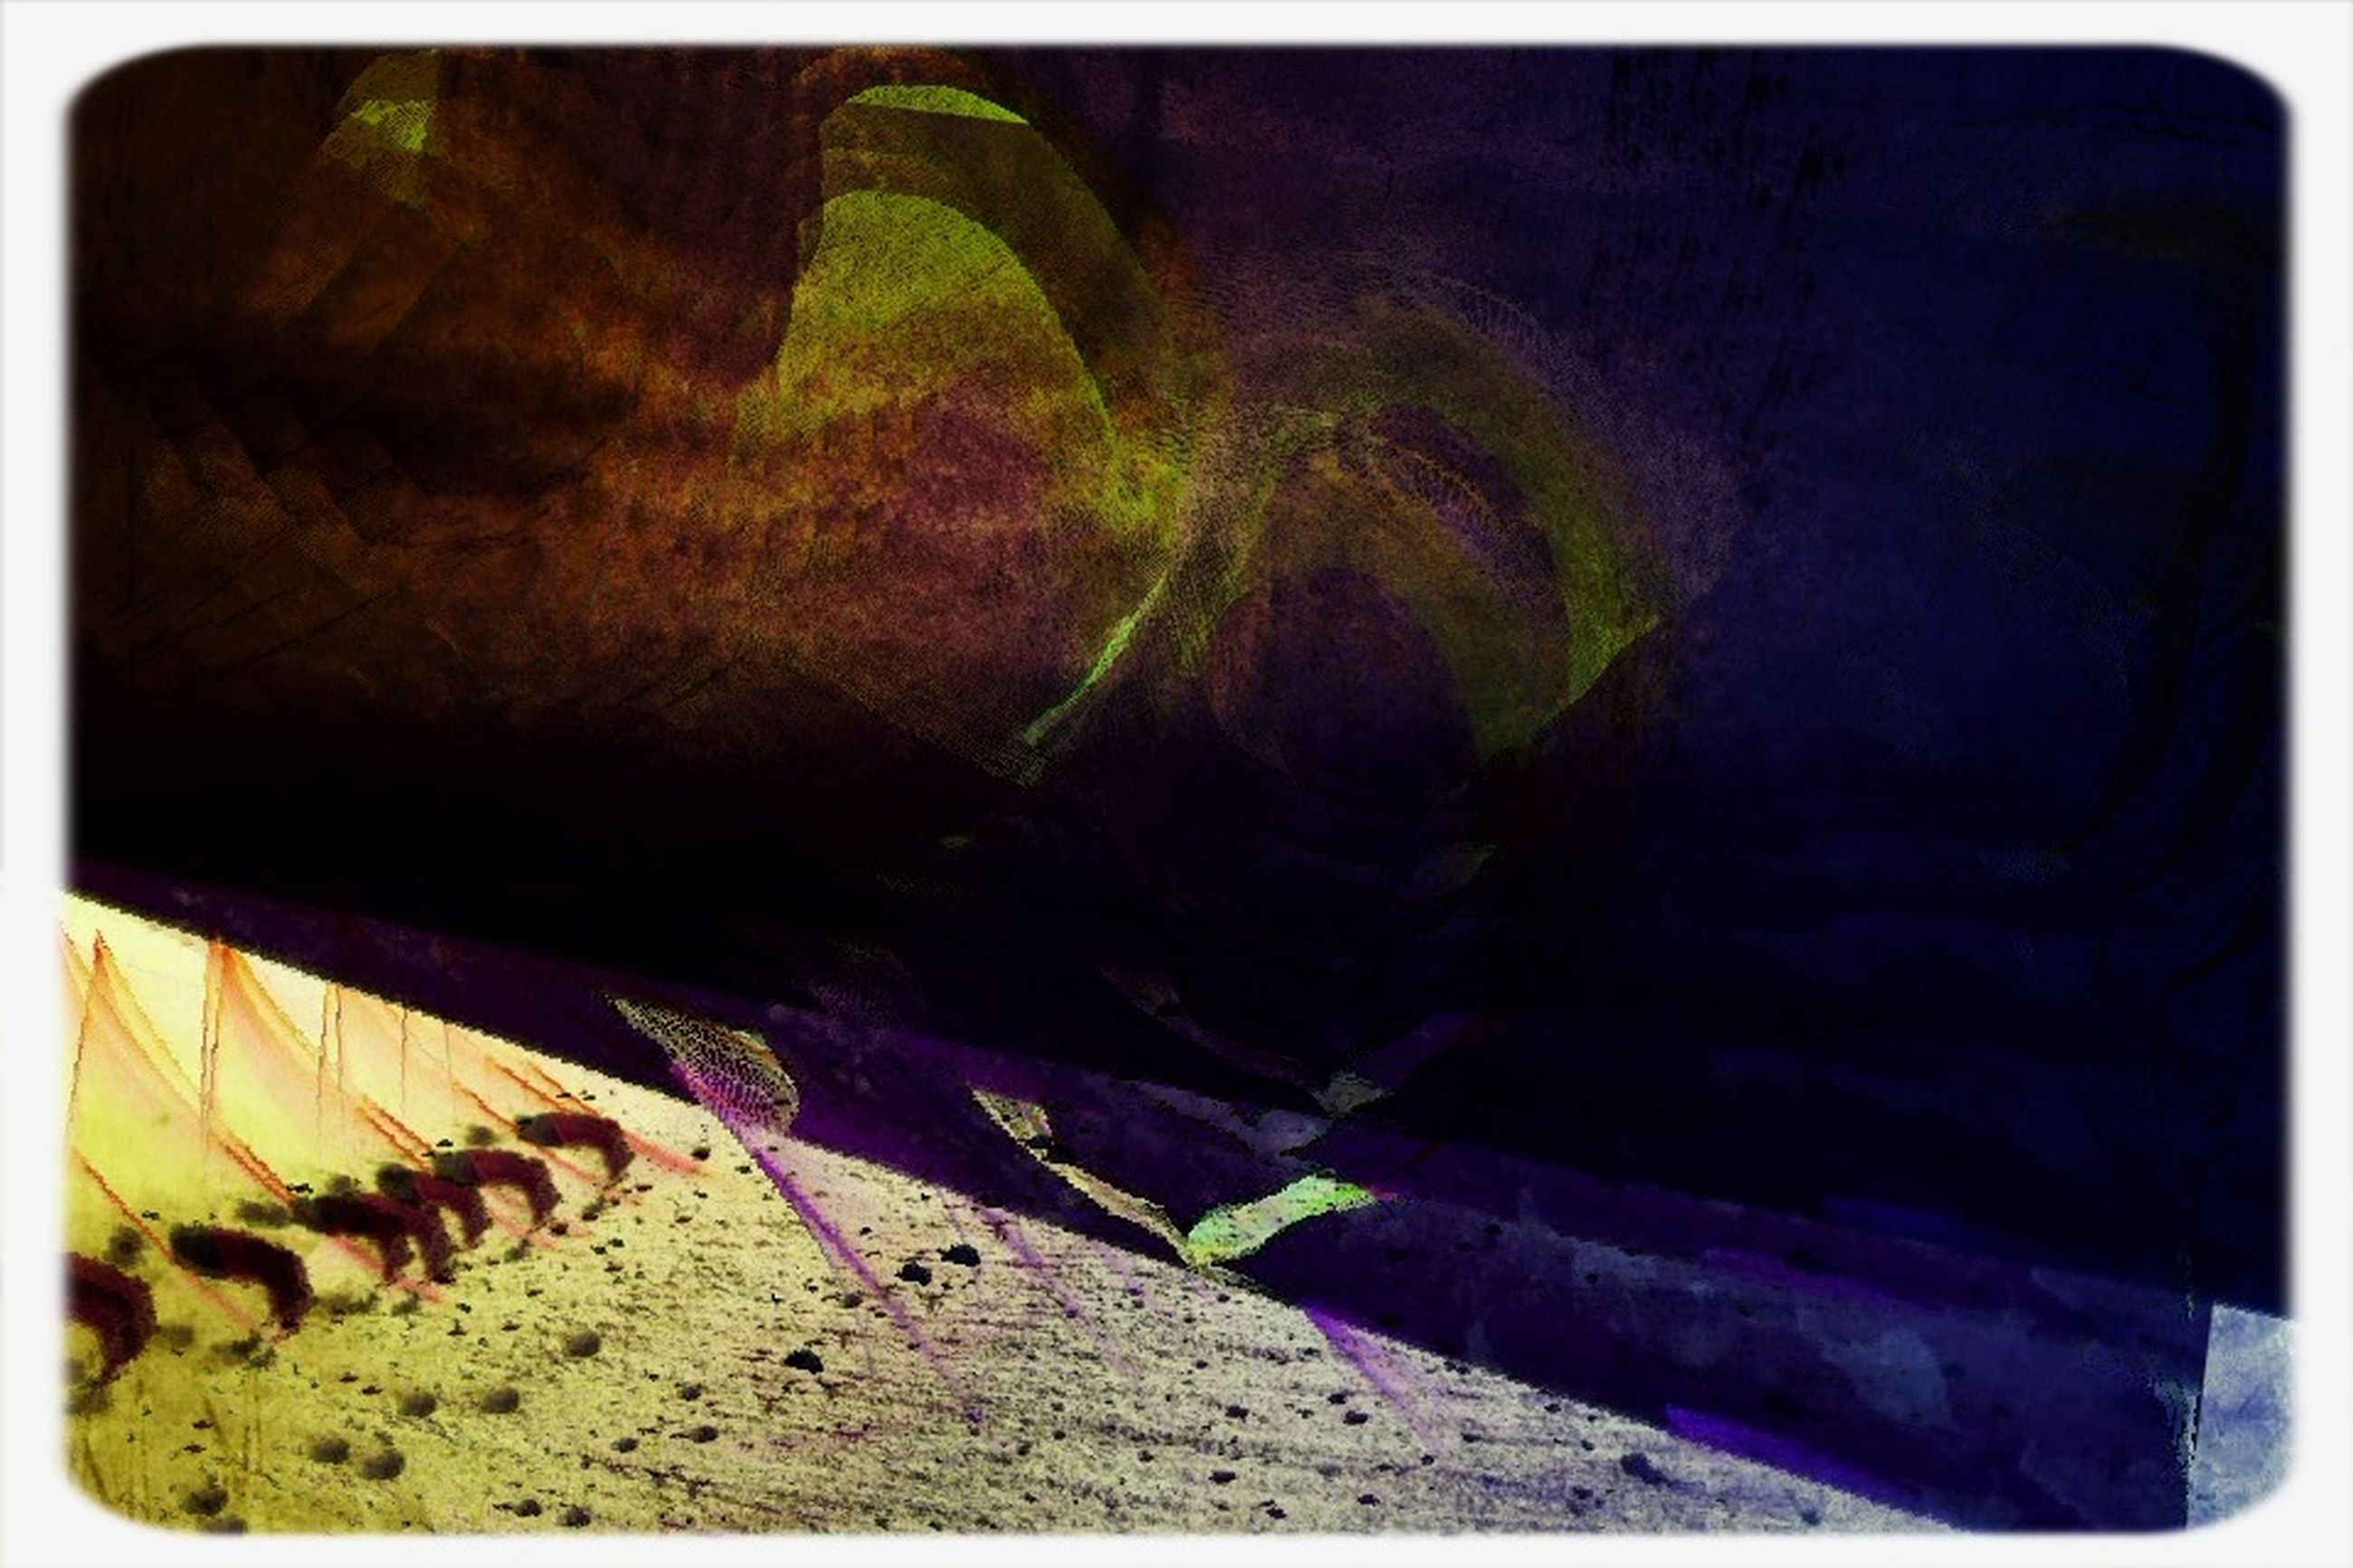 transfer print, auto post production filter, day, outdoors, rock - object, nature, sunlight, plant, shadow, no people, growth, tree, wall - building feature, tranquility, panoramic, sand, textured, rock formation, high angle view, steps